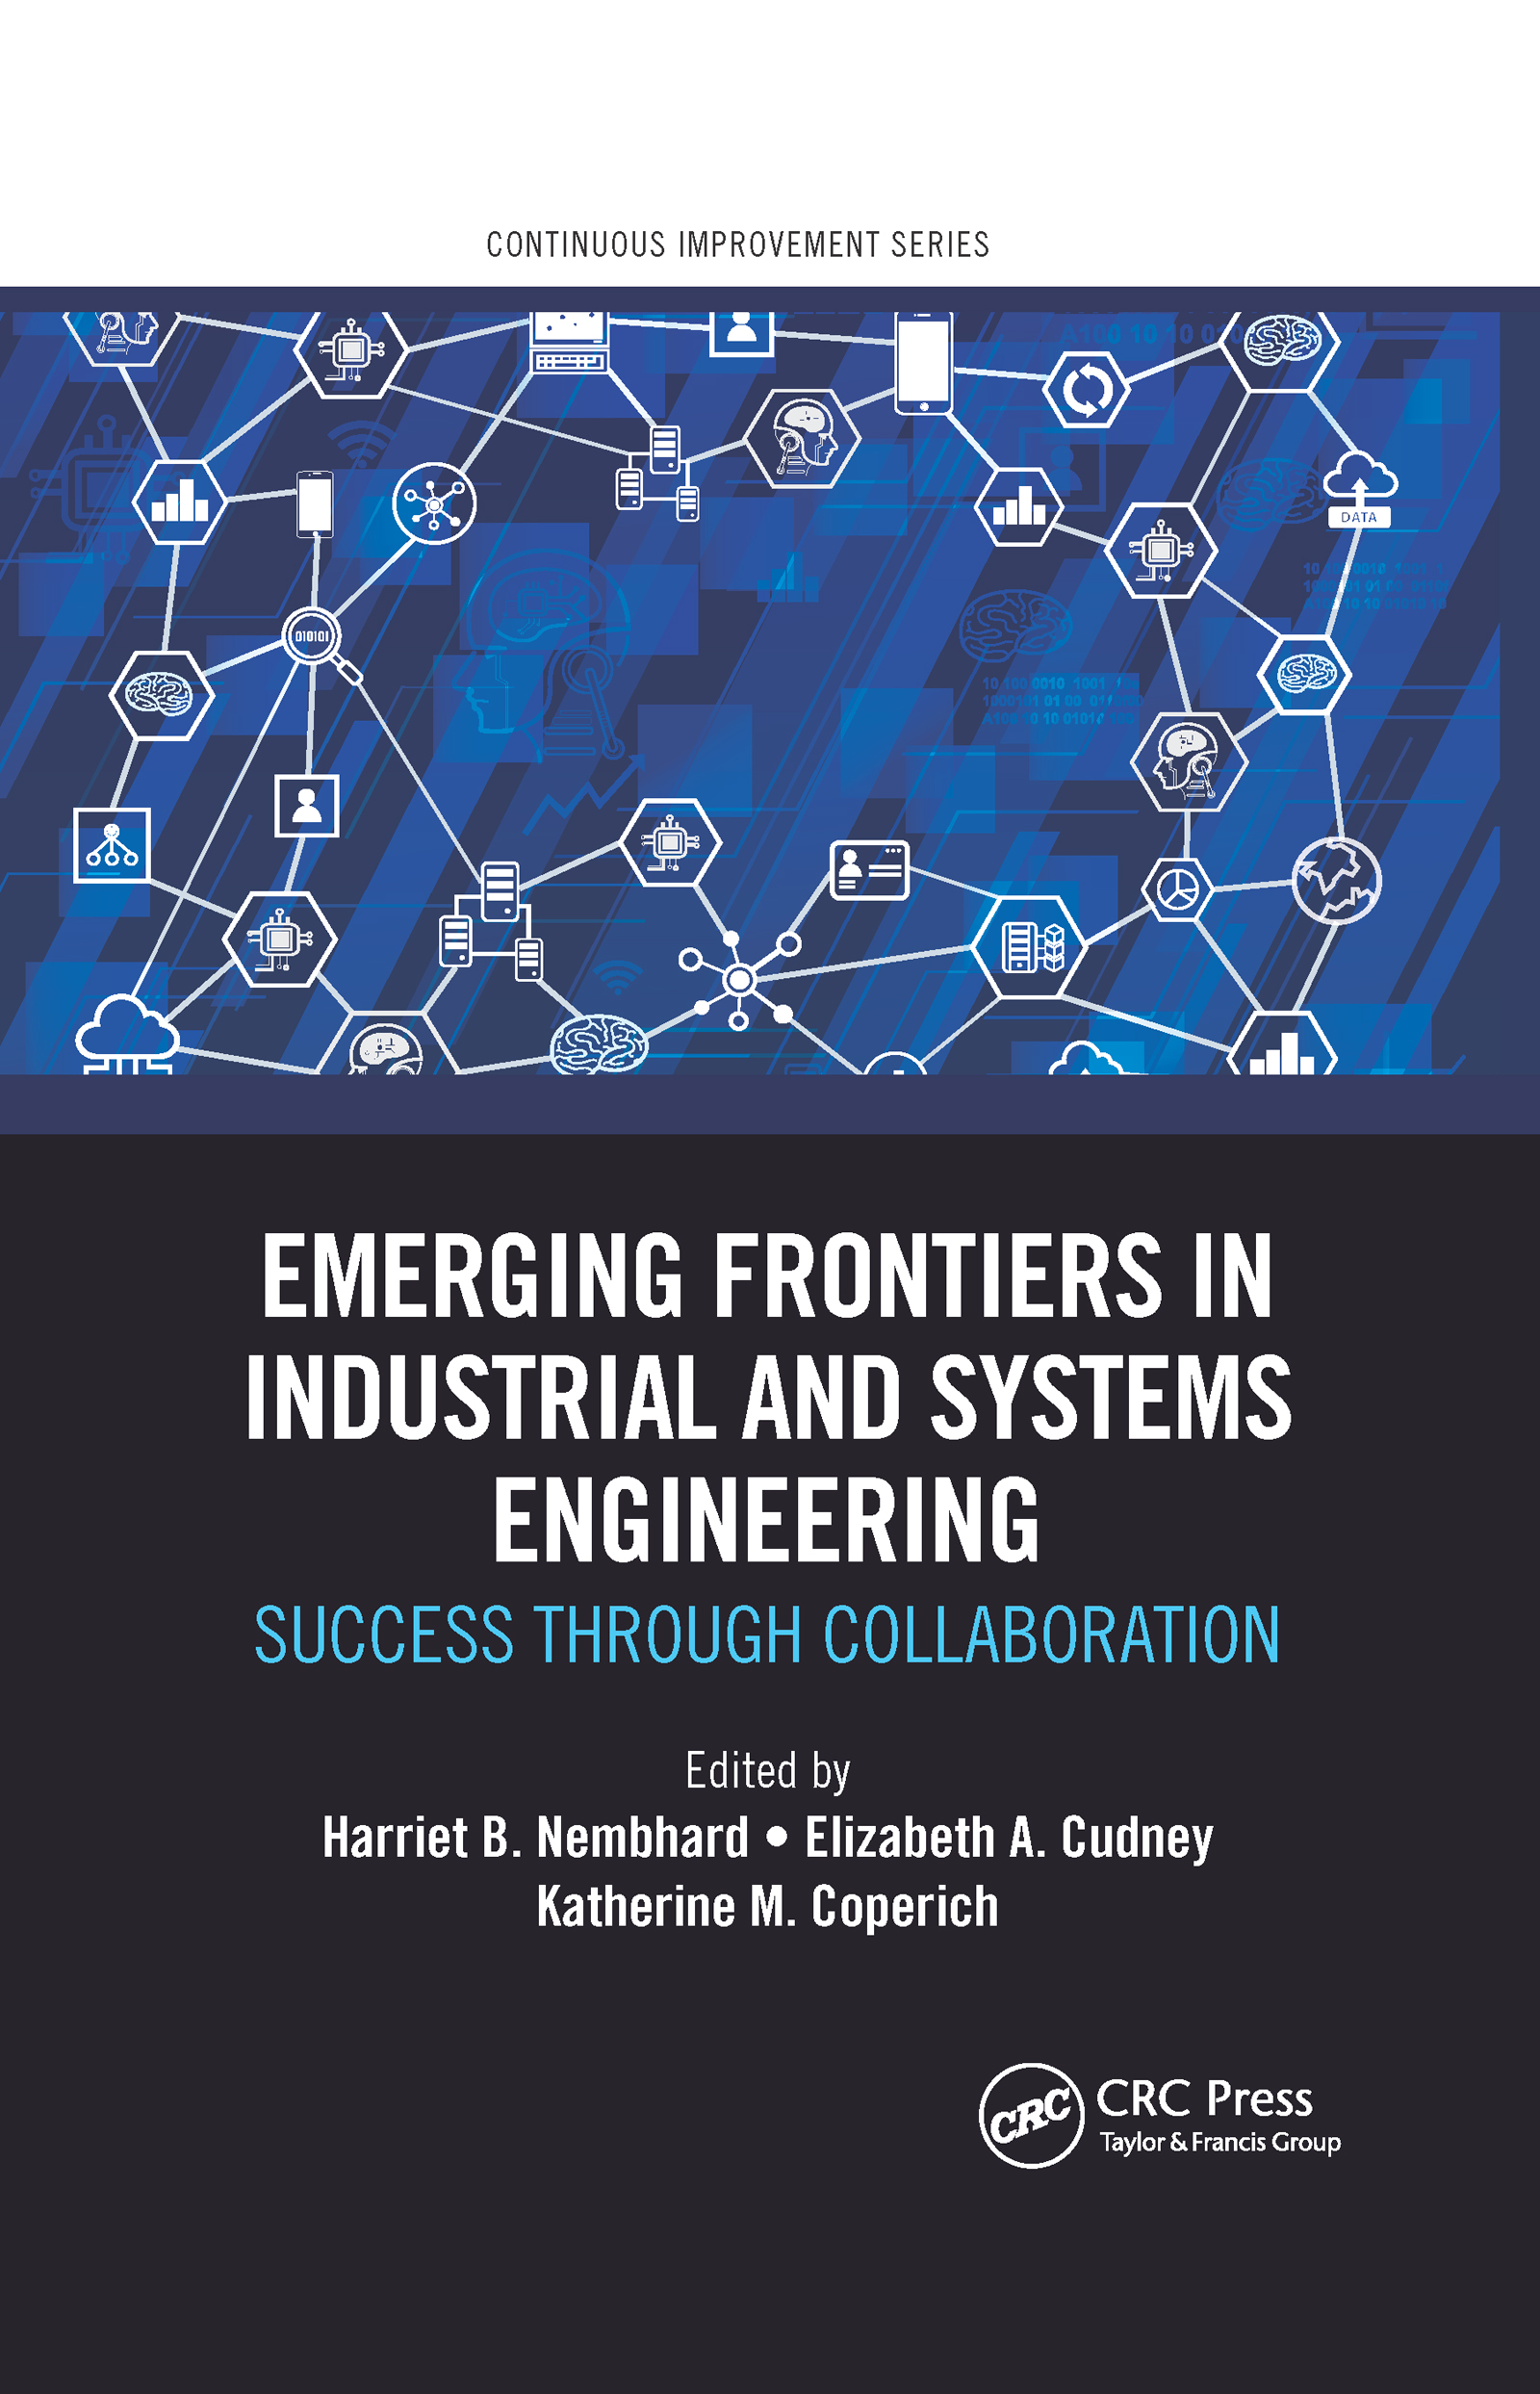 Emerging Frontiers in Industrial and Systems Engineering